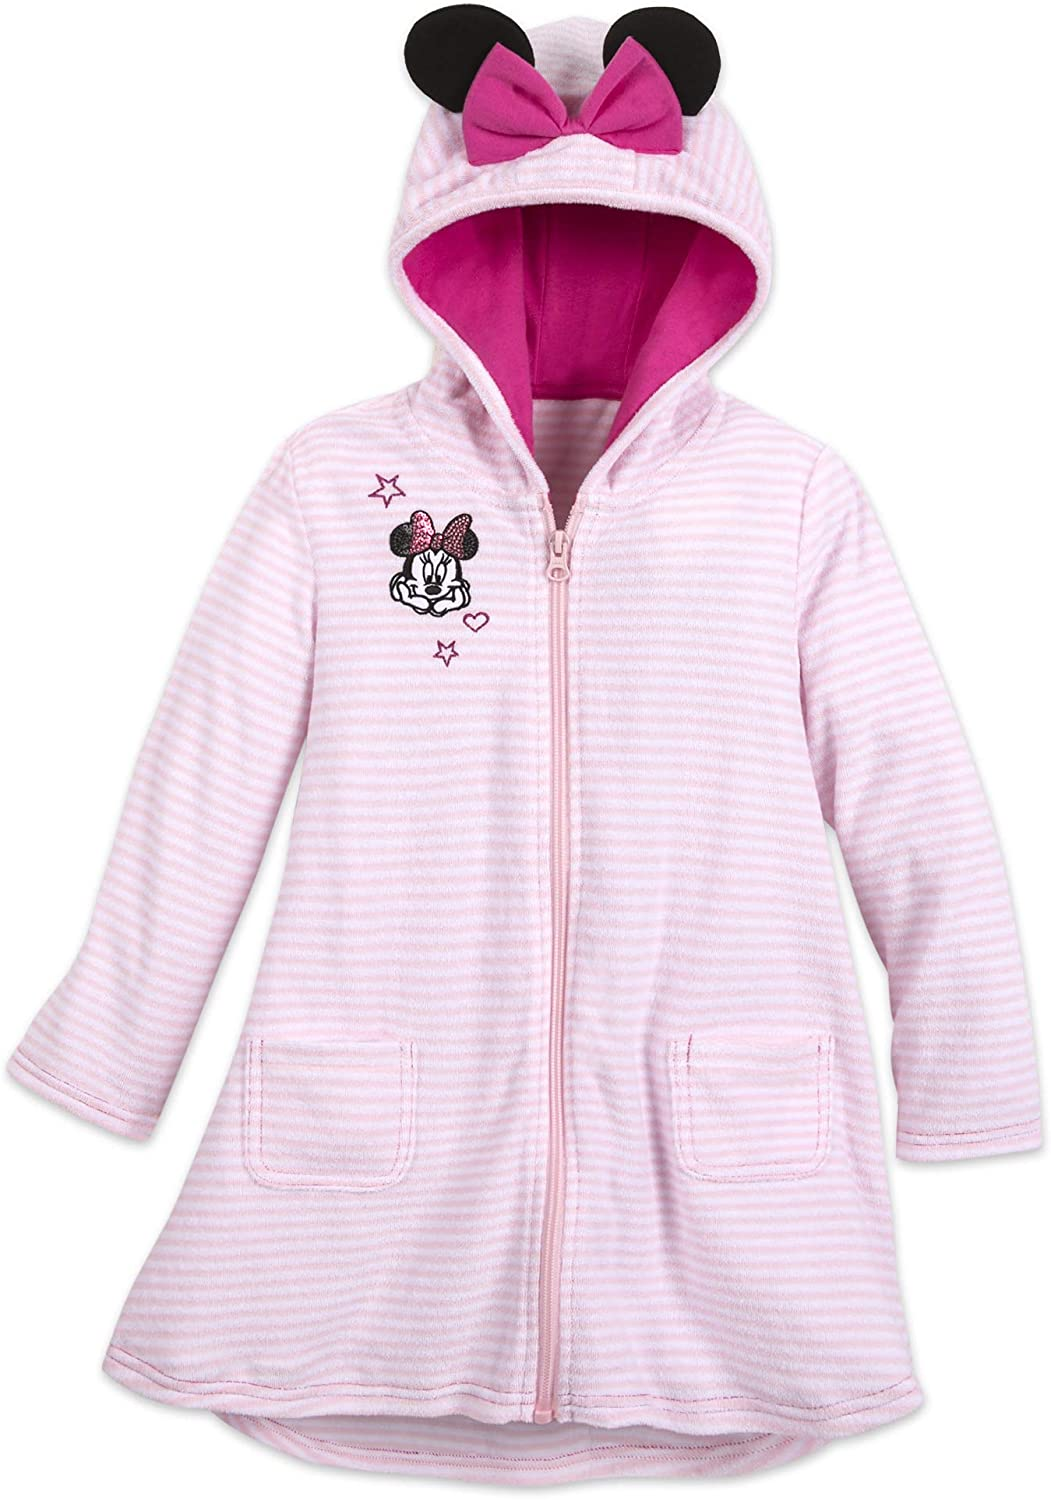 Disney Mickey Mouse Striped Cover-Up for Girls Multi